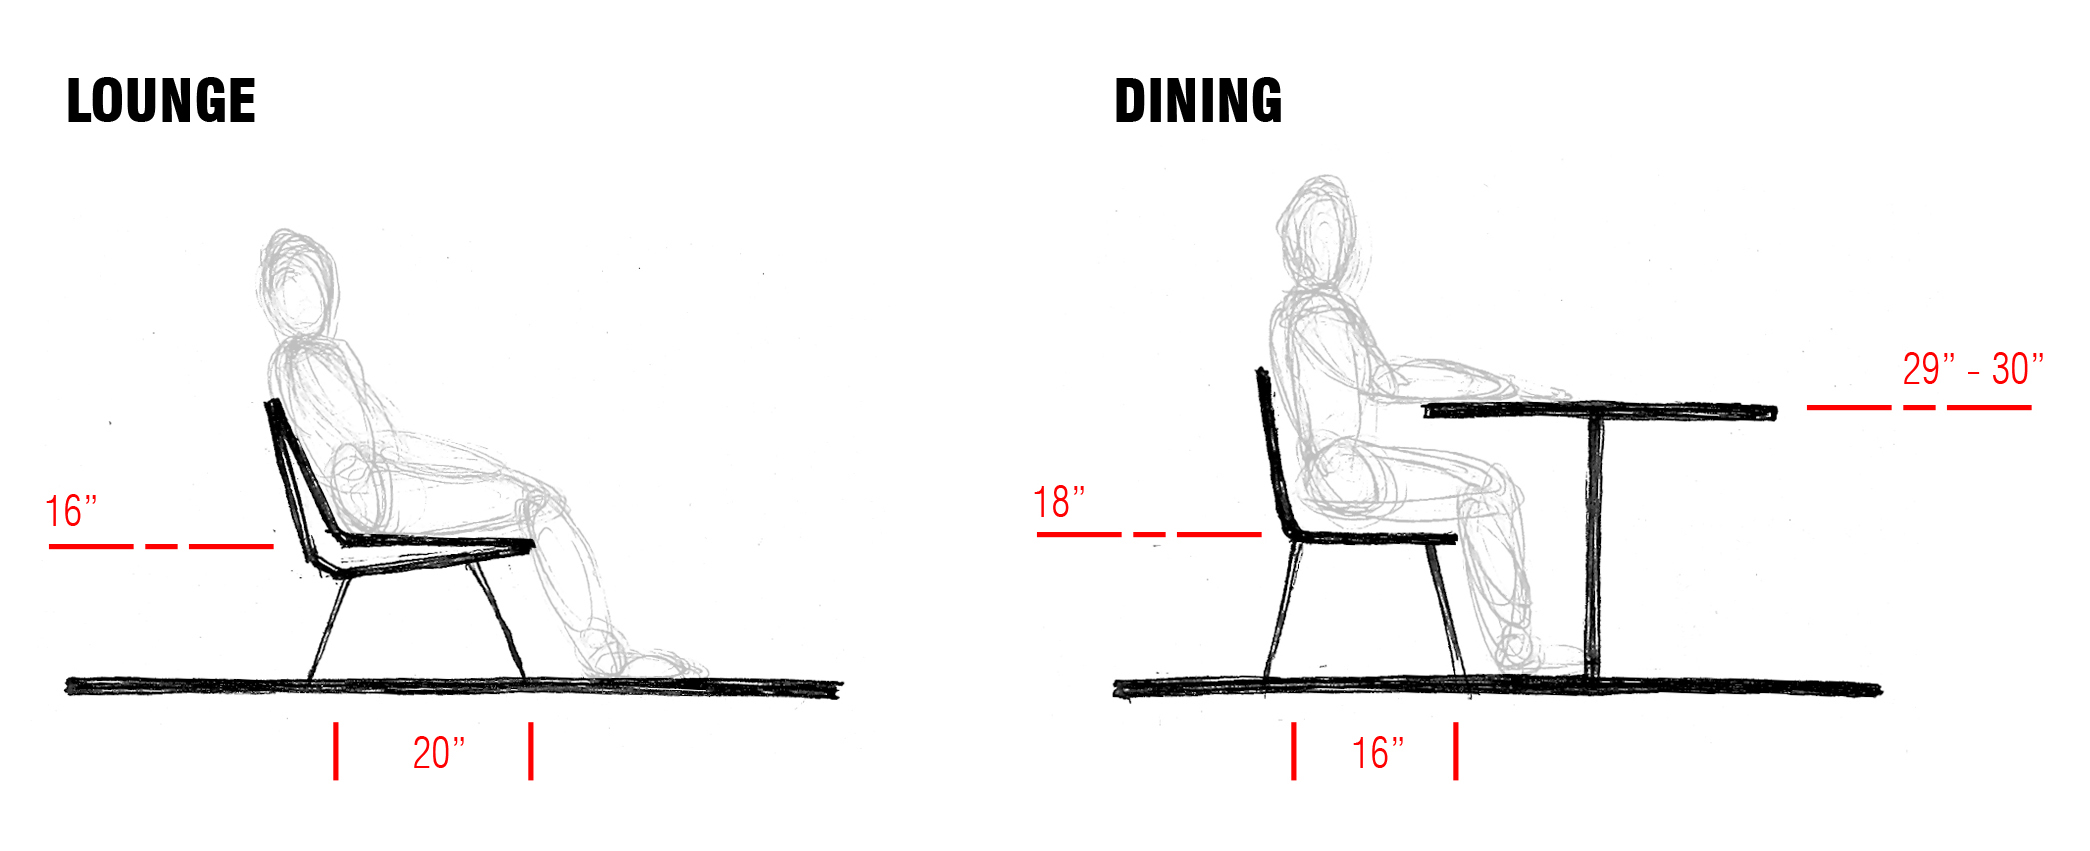 Dining Table Standard Dining Table Sizes